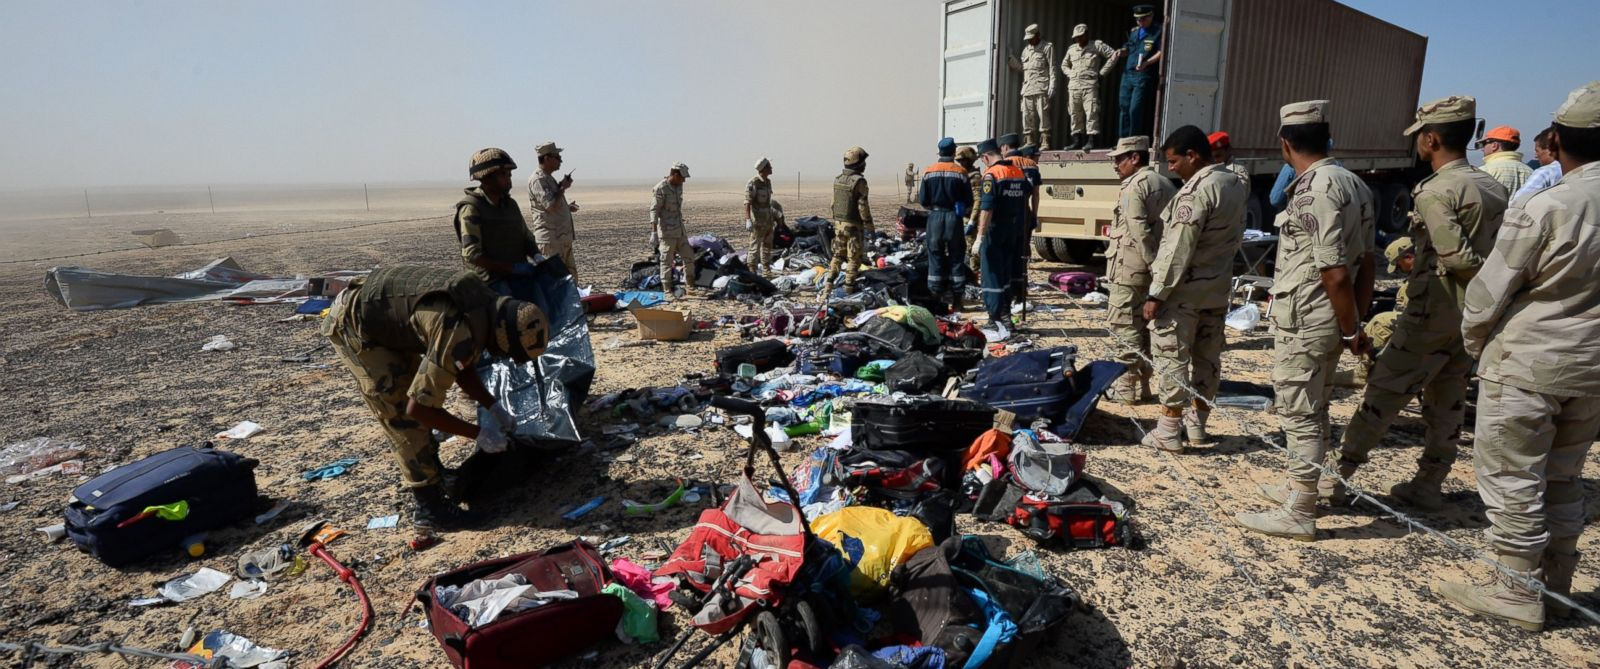 PHOTO: Egyptian soldiers collect personal belongings of plane crash victims at the crash site of a passenger plane bound for St. Petersburg in Russia that crashed in Hassana, Egypts Sinai Peninsula, Nov. 2, 2015.